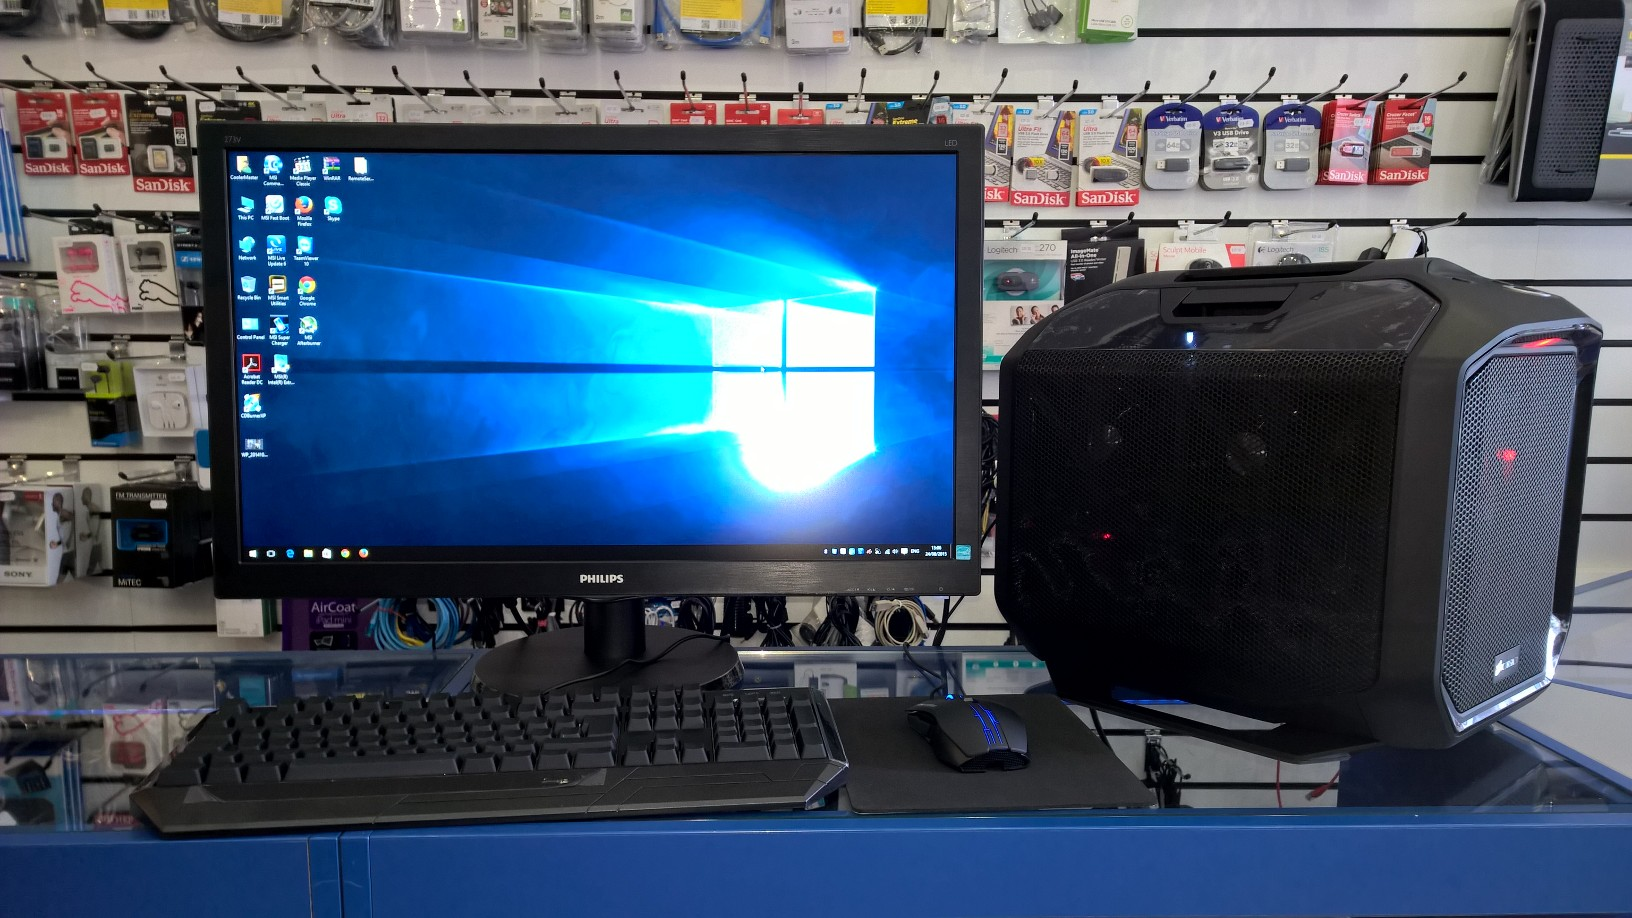 Msi Z871 Gaming Pc Beoneit Pc Laptop Mobile Phone